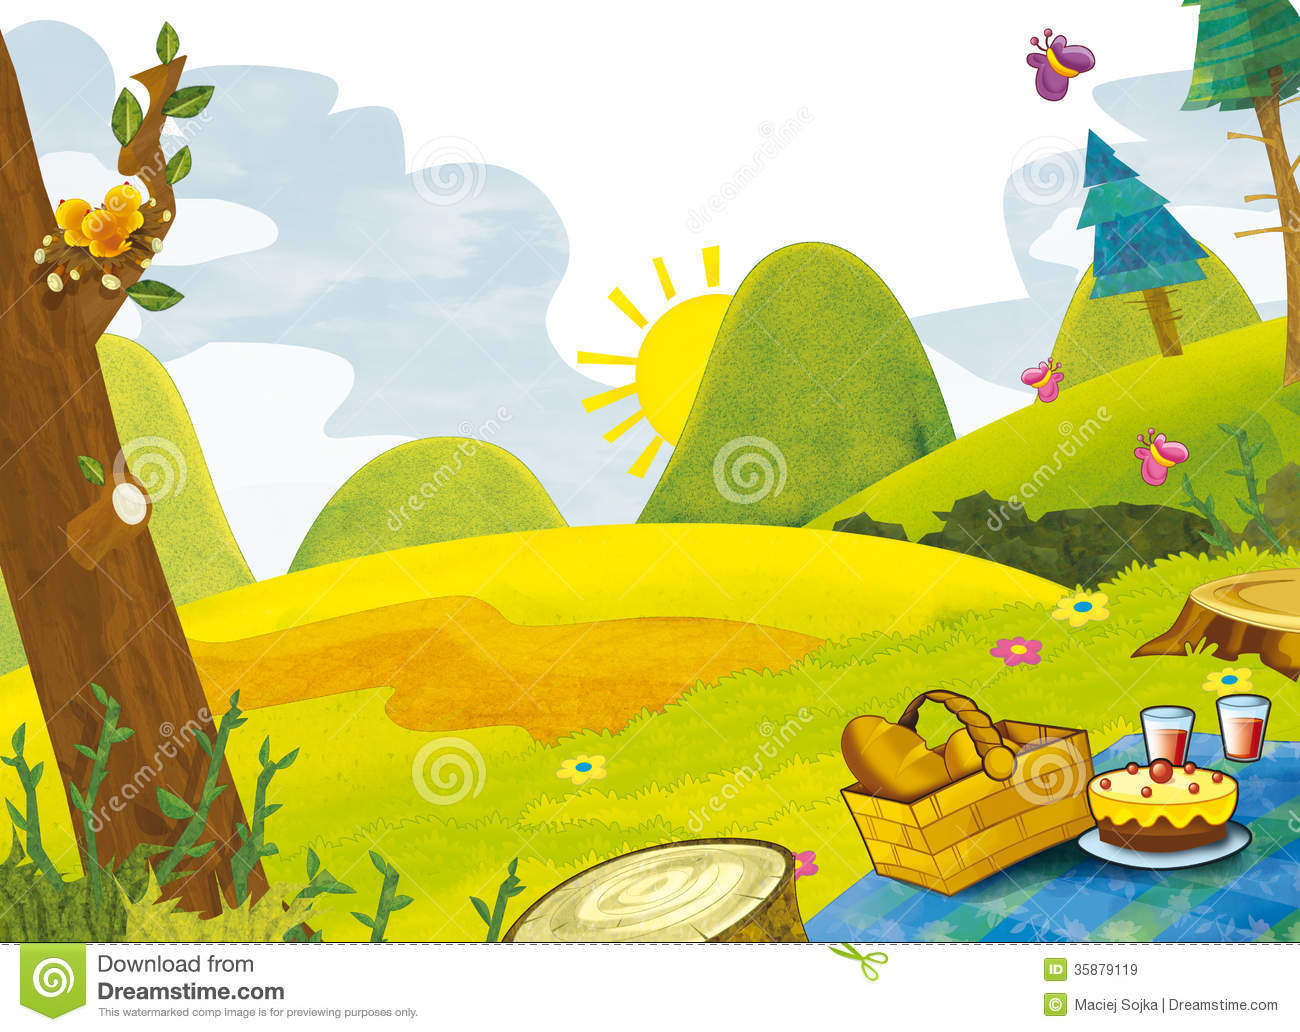 Cartoon Scenery Summer Illustration For The Children Royalty Free Stock Images Image 35879119